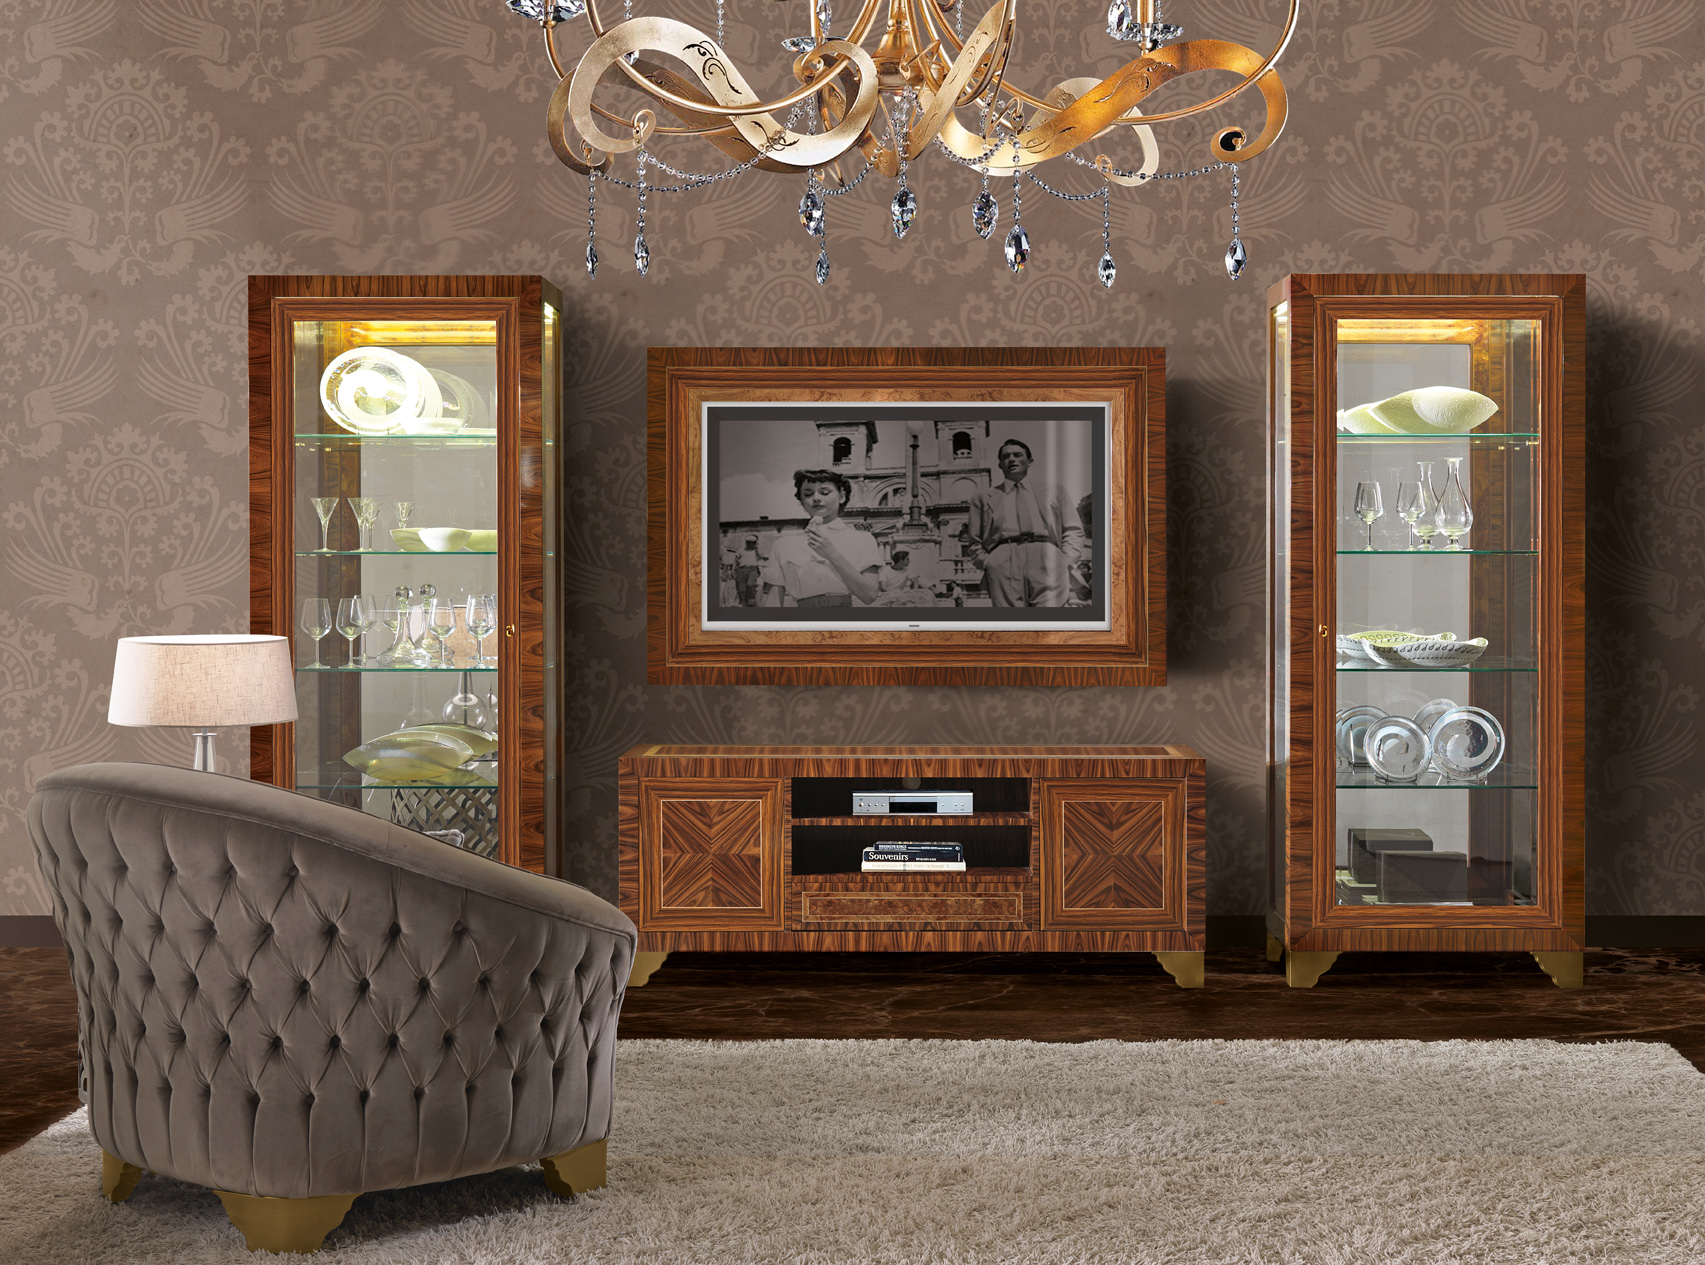 3153 armchair, 3155 tv frame, 3156 tv cabinet, 3157 showcase (2)